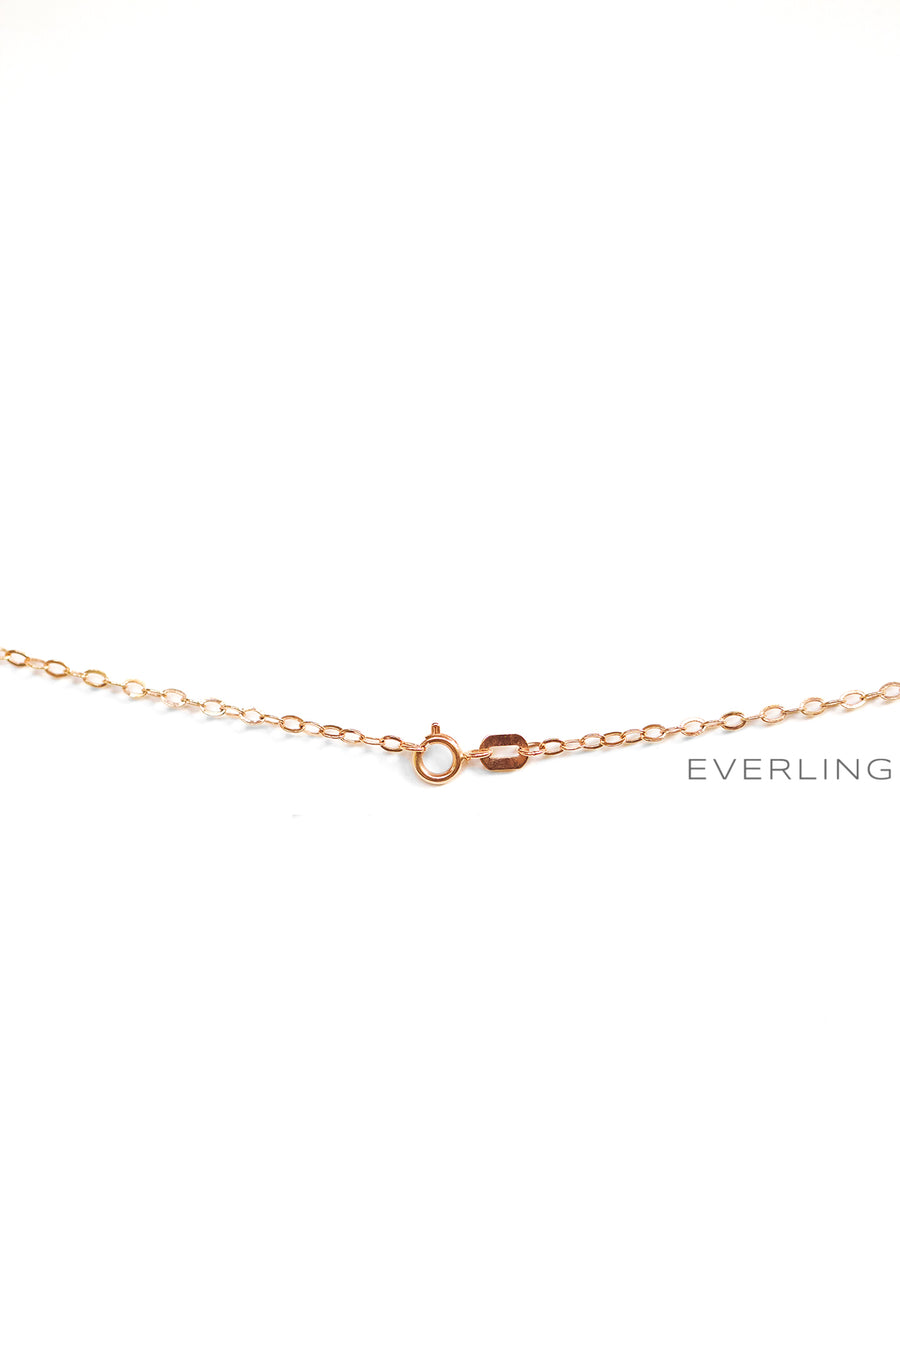 "Back detail- 14K Rose Gold 36"" Link Chain. #pinkgold #goldchains www.everlingjewelry.com"